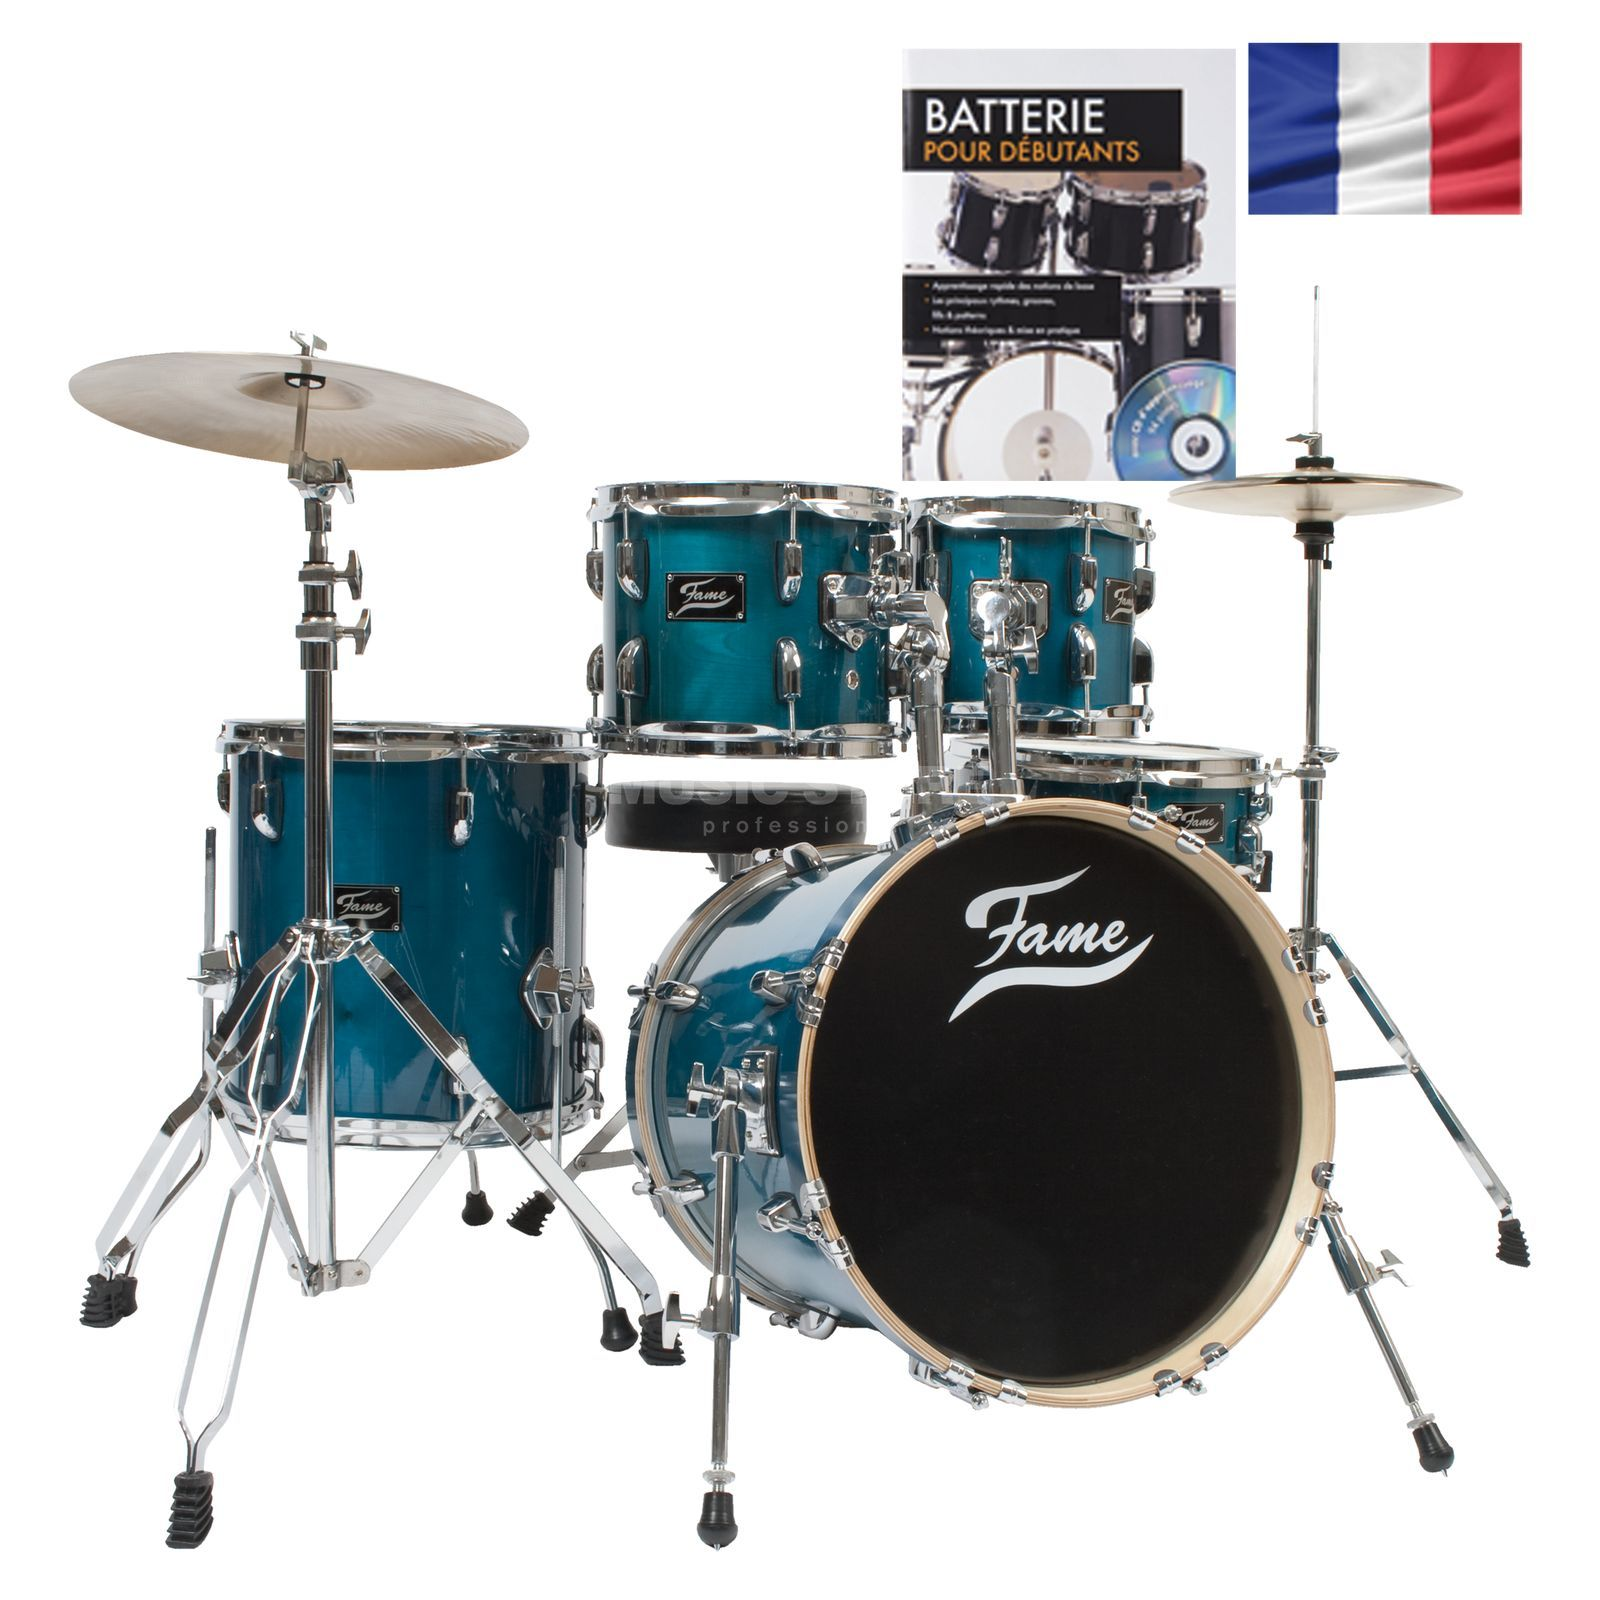 SET Batterie acoustique FAME Jungle, turquoise + partitions Produktbillede